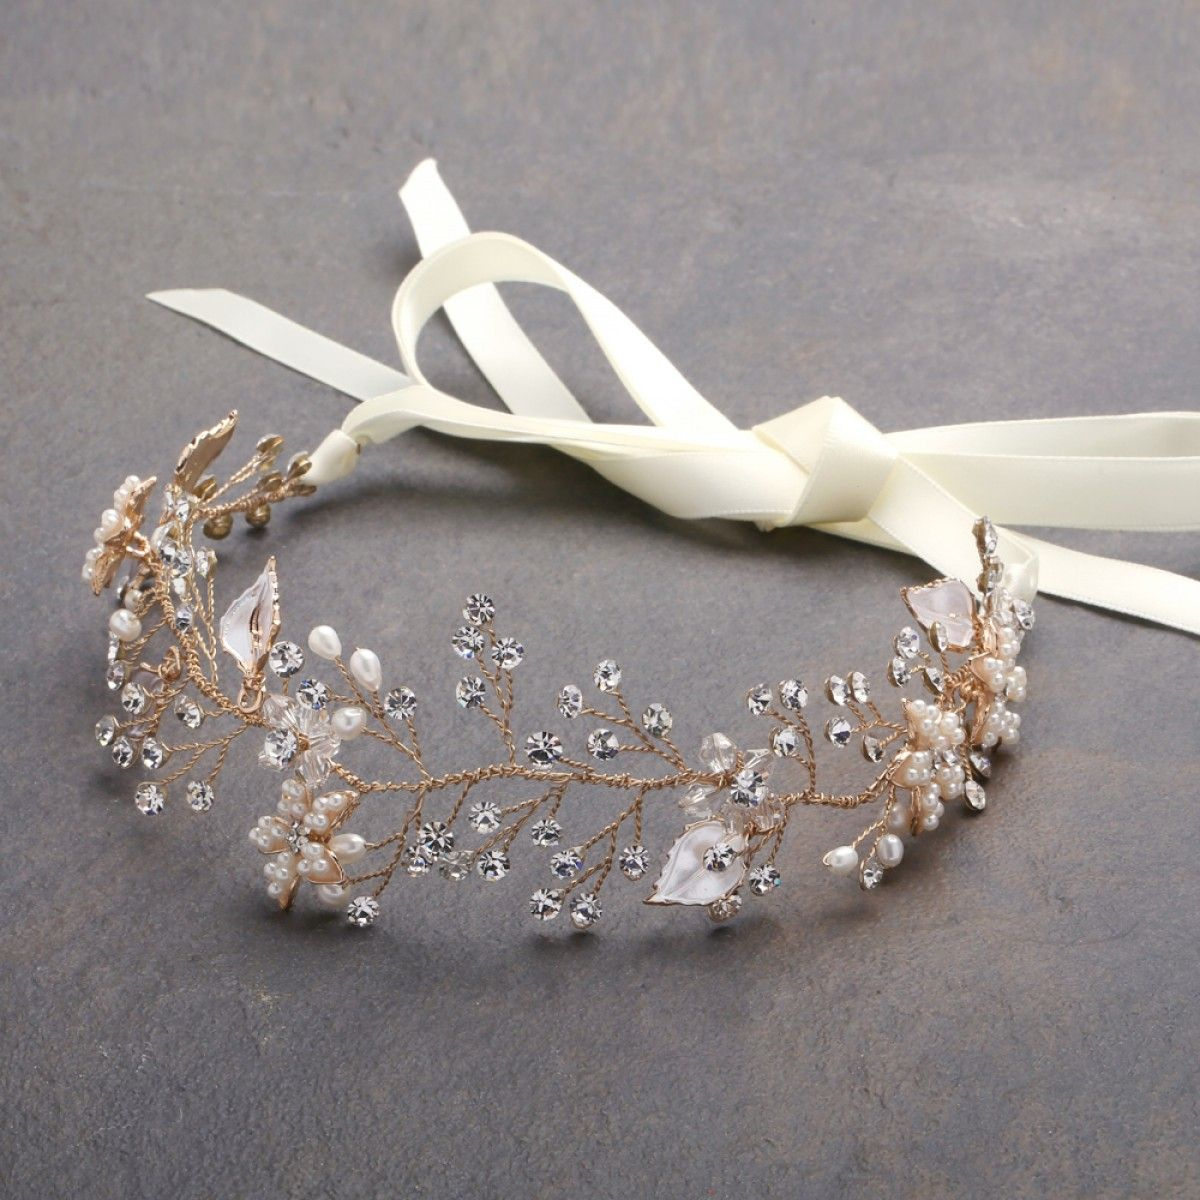 Designer bridal headband with hand painted gold and silver leaves